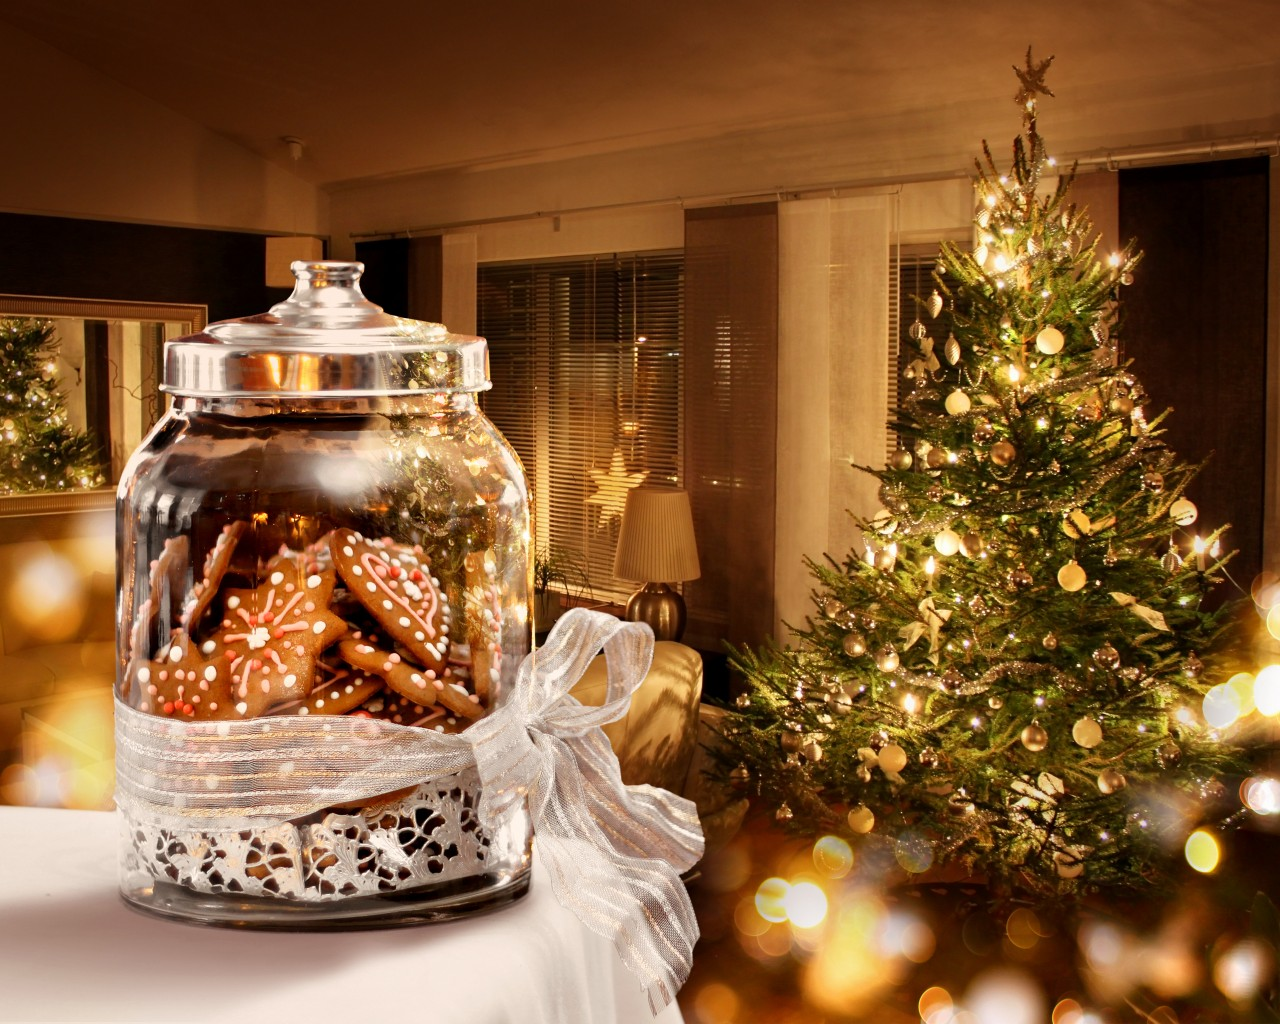 Christmas Tree and Sweets